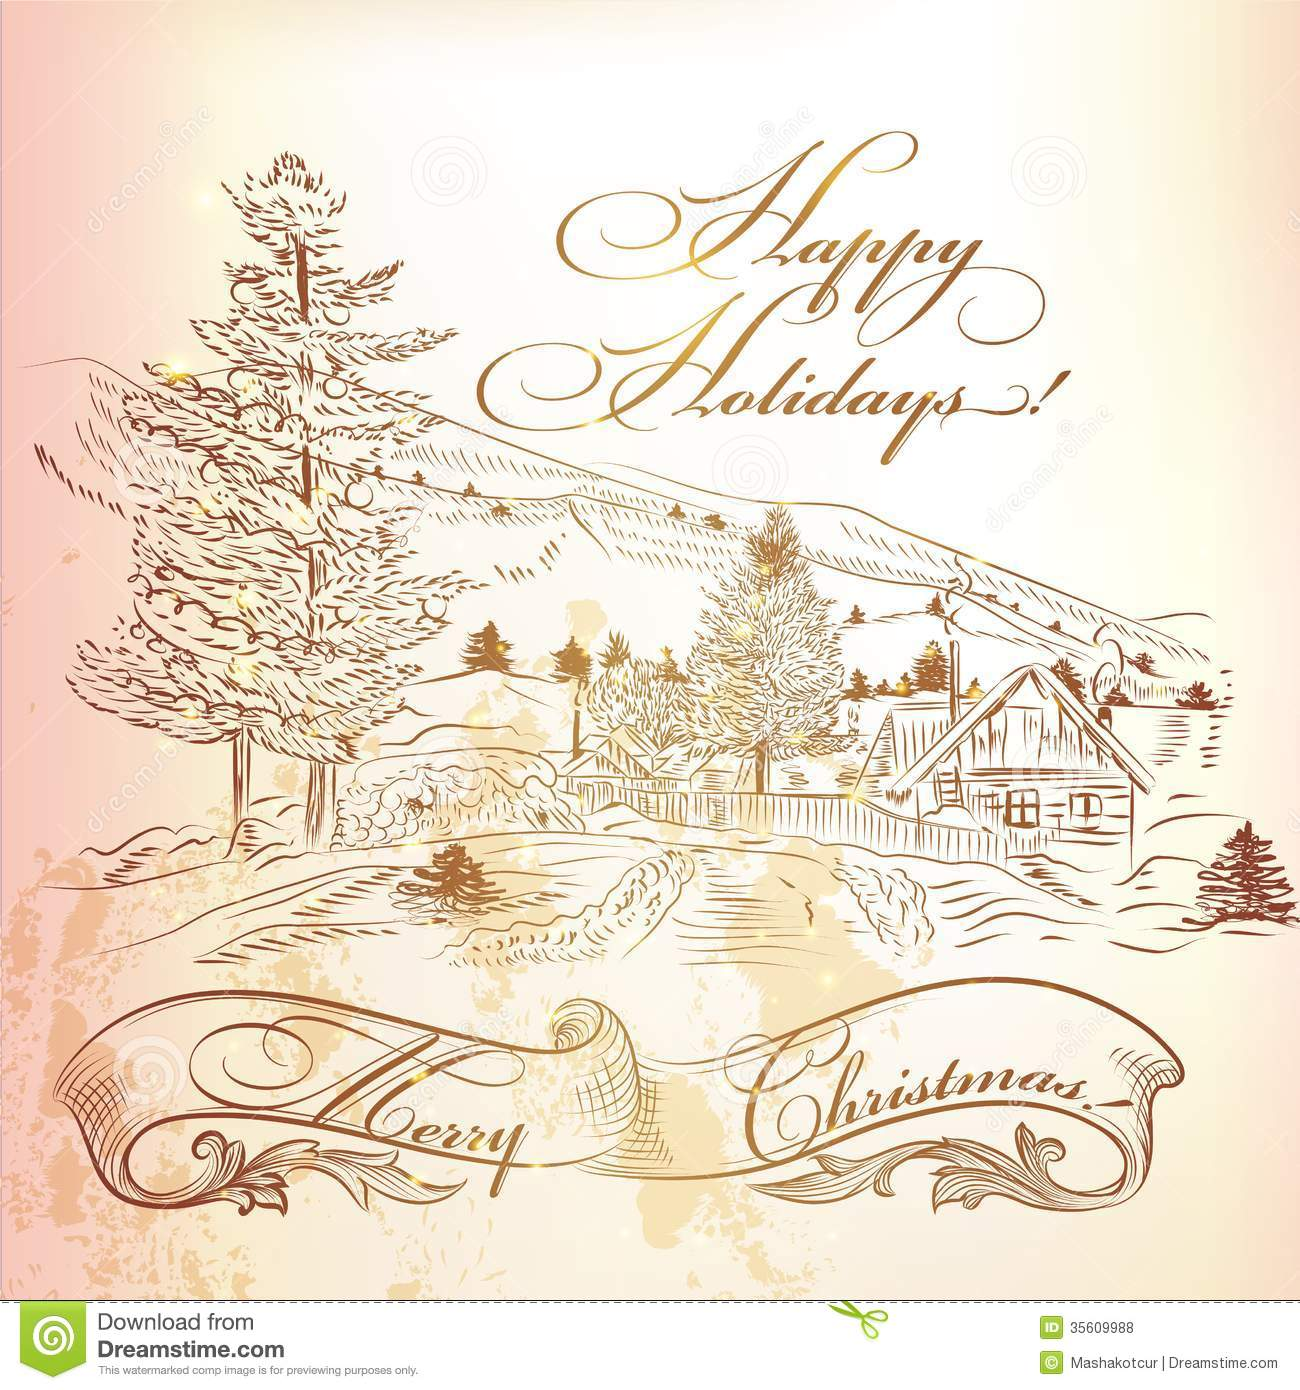 Christmas Greeting Card In Vintage Style With Hand Drawn Landsca Royalty Free Stock Photos